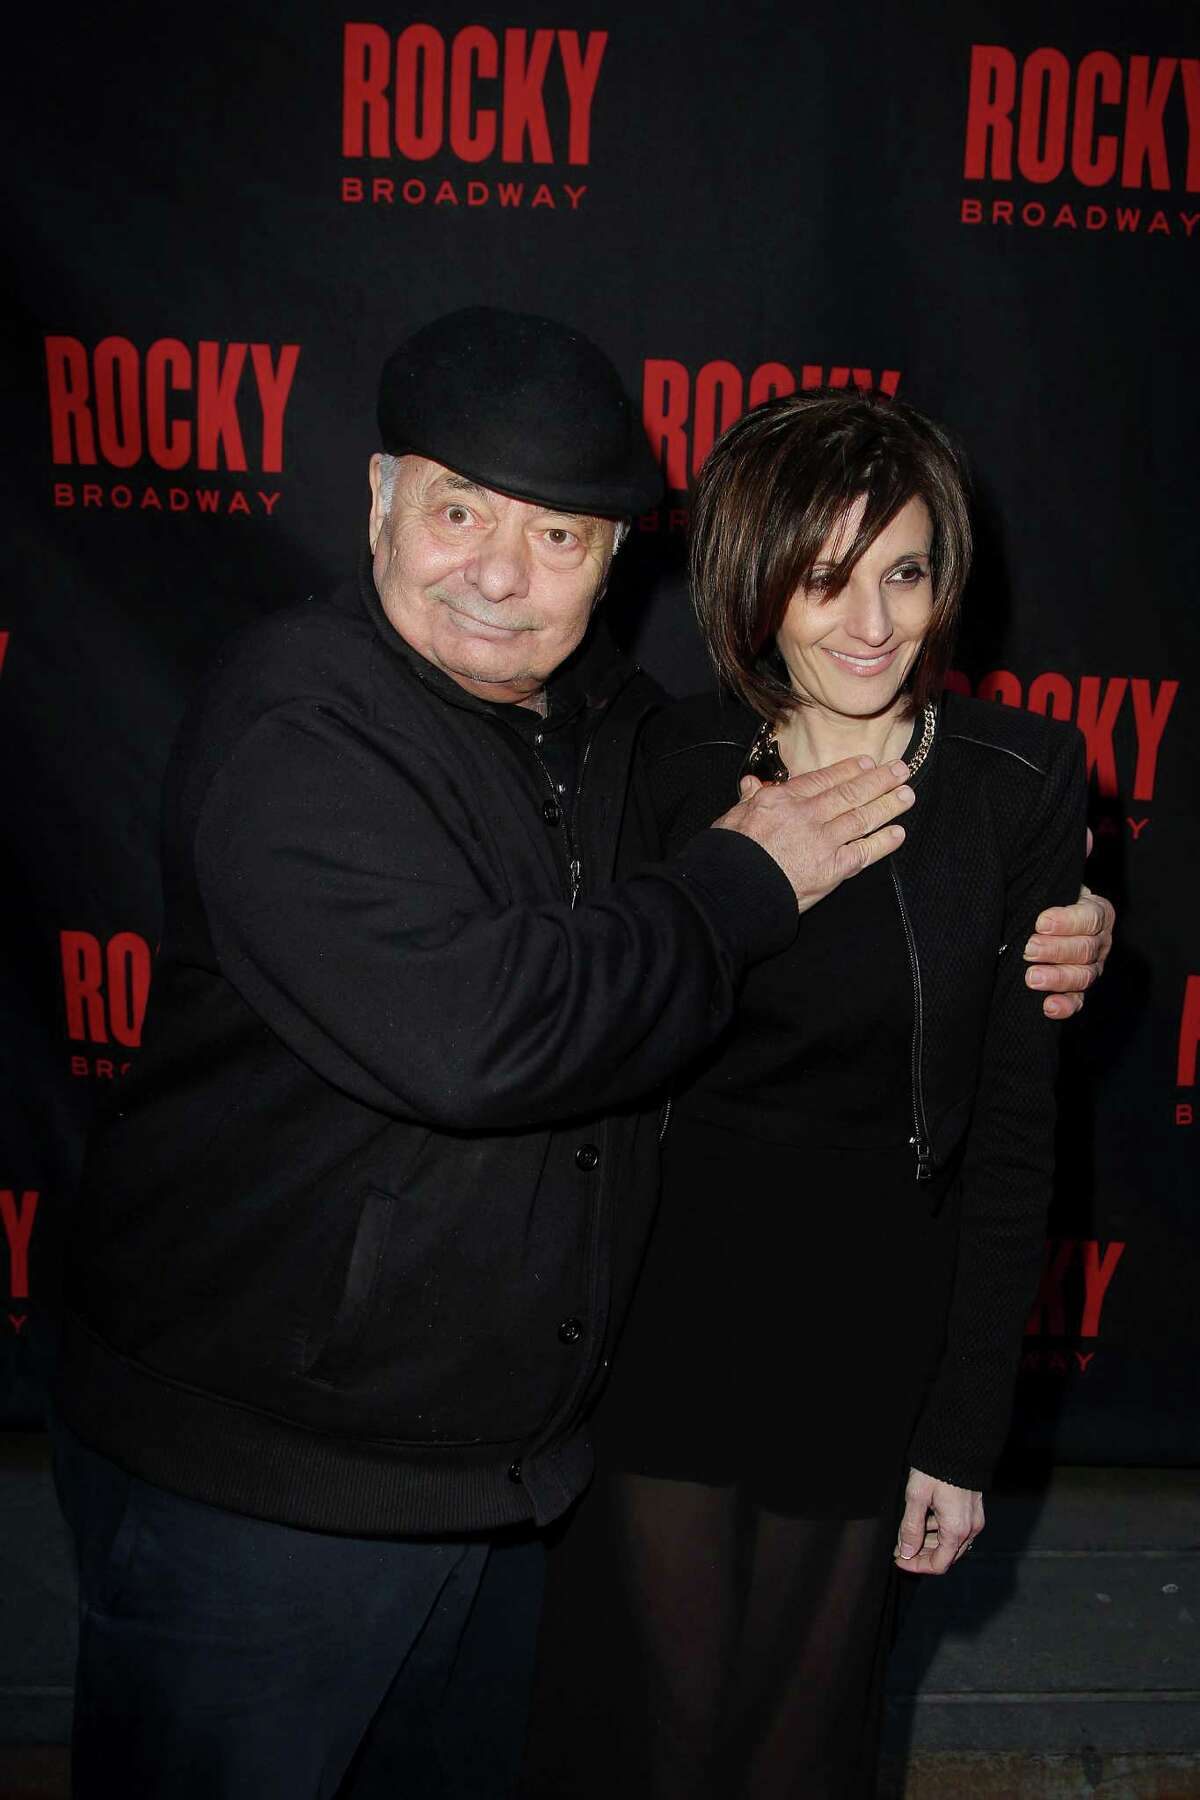 This image released by Starpix shows actor Burt Young, left, and Lisa Scuteri arriving at opening night of the Broadway musical